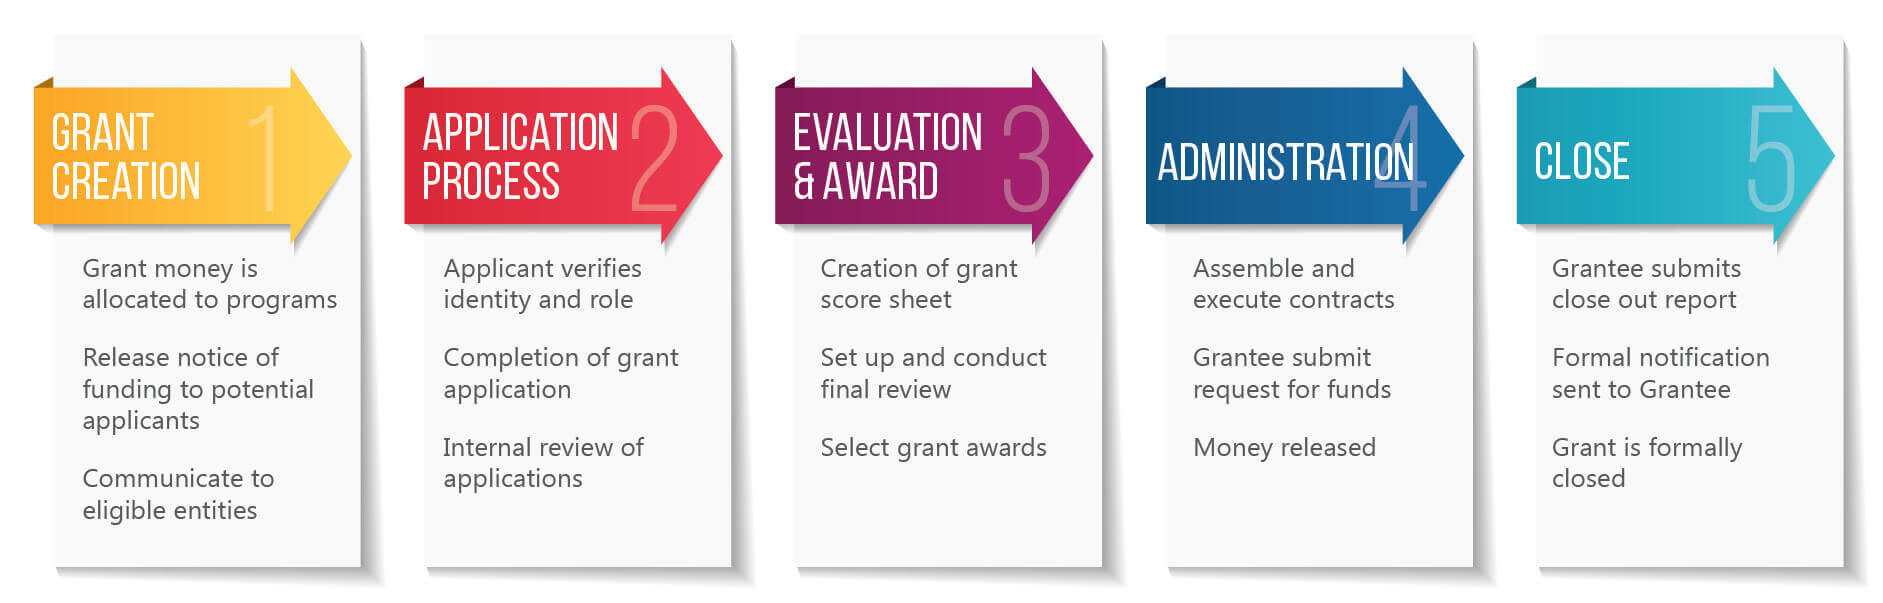 lifecycle of grantmaking 1 grant creation 2 application process 3